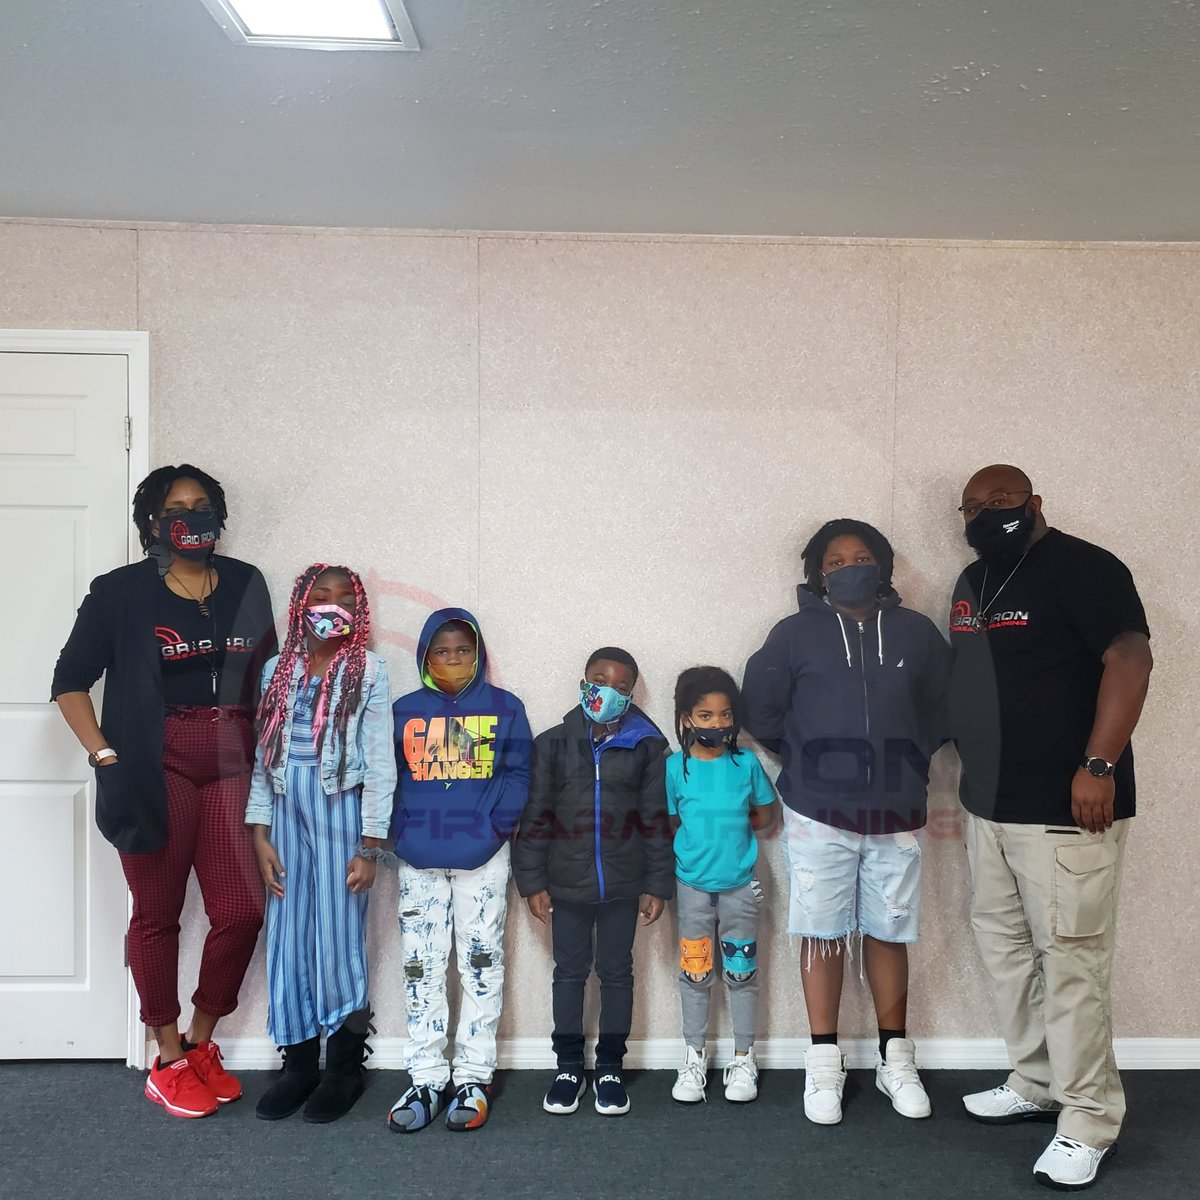 Awesome class today!! 6 eager children ready to learn about #firearmsafety. #GridIronFirearmTraining #2ndAmendment #firearms #DuvalCounty #SaturdayVibes #saturdayfunday